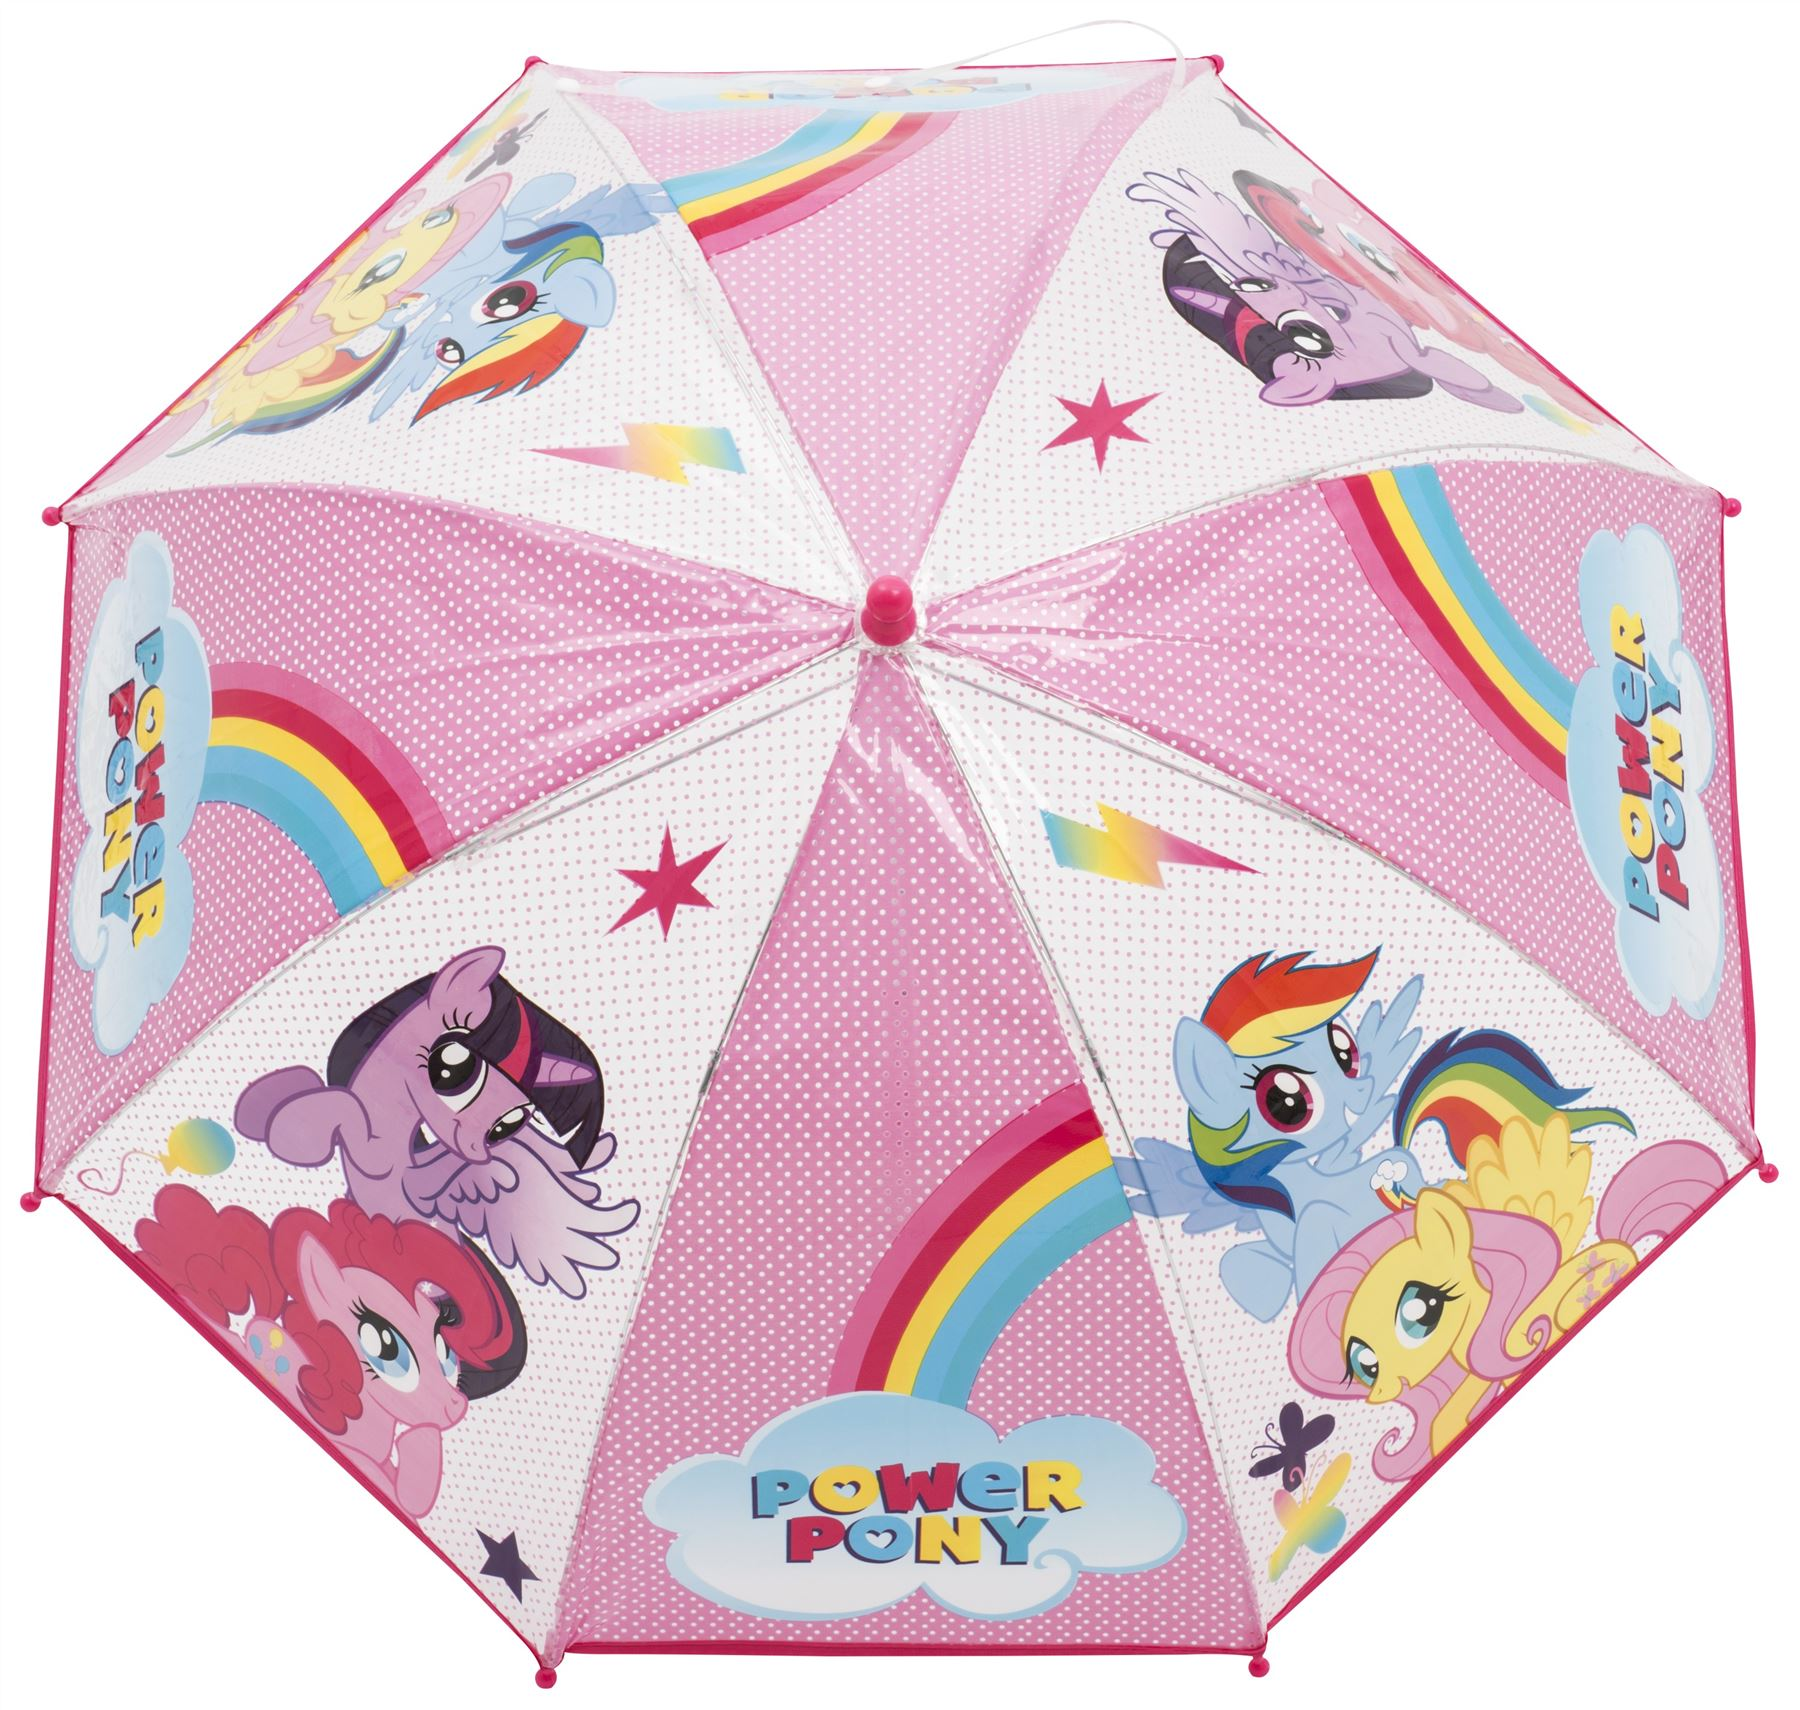 Parasol, along with nine other characters from the show, appears in a promotional image shown on the MiniMini+ website, the My Little Pony Friendship is Magic Facebook page, and the interior of the My Little Pony Friendship is Magic: Season One DVD set makeshop-mdrcky9h.ga links: Parasol image gallery.